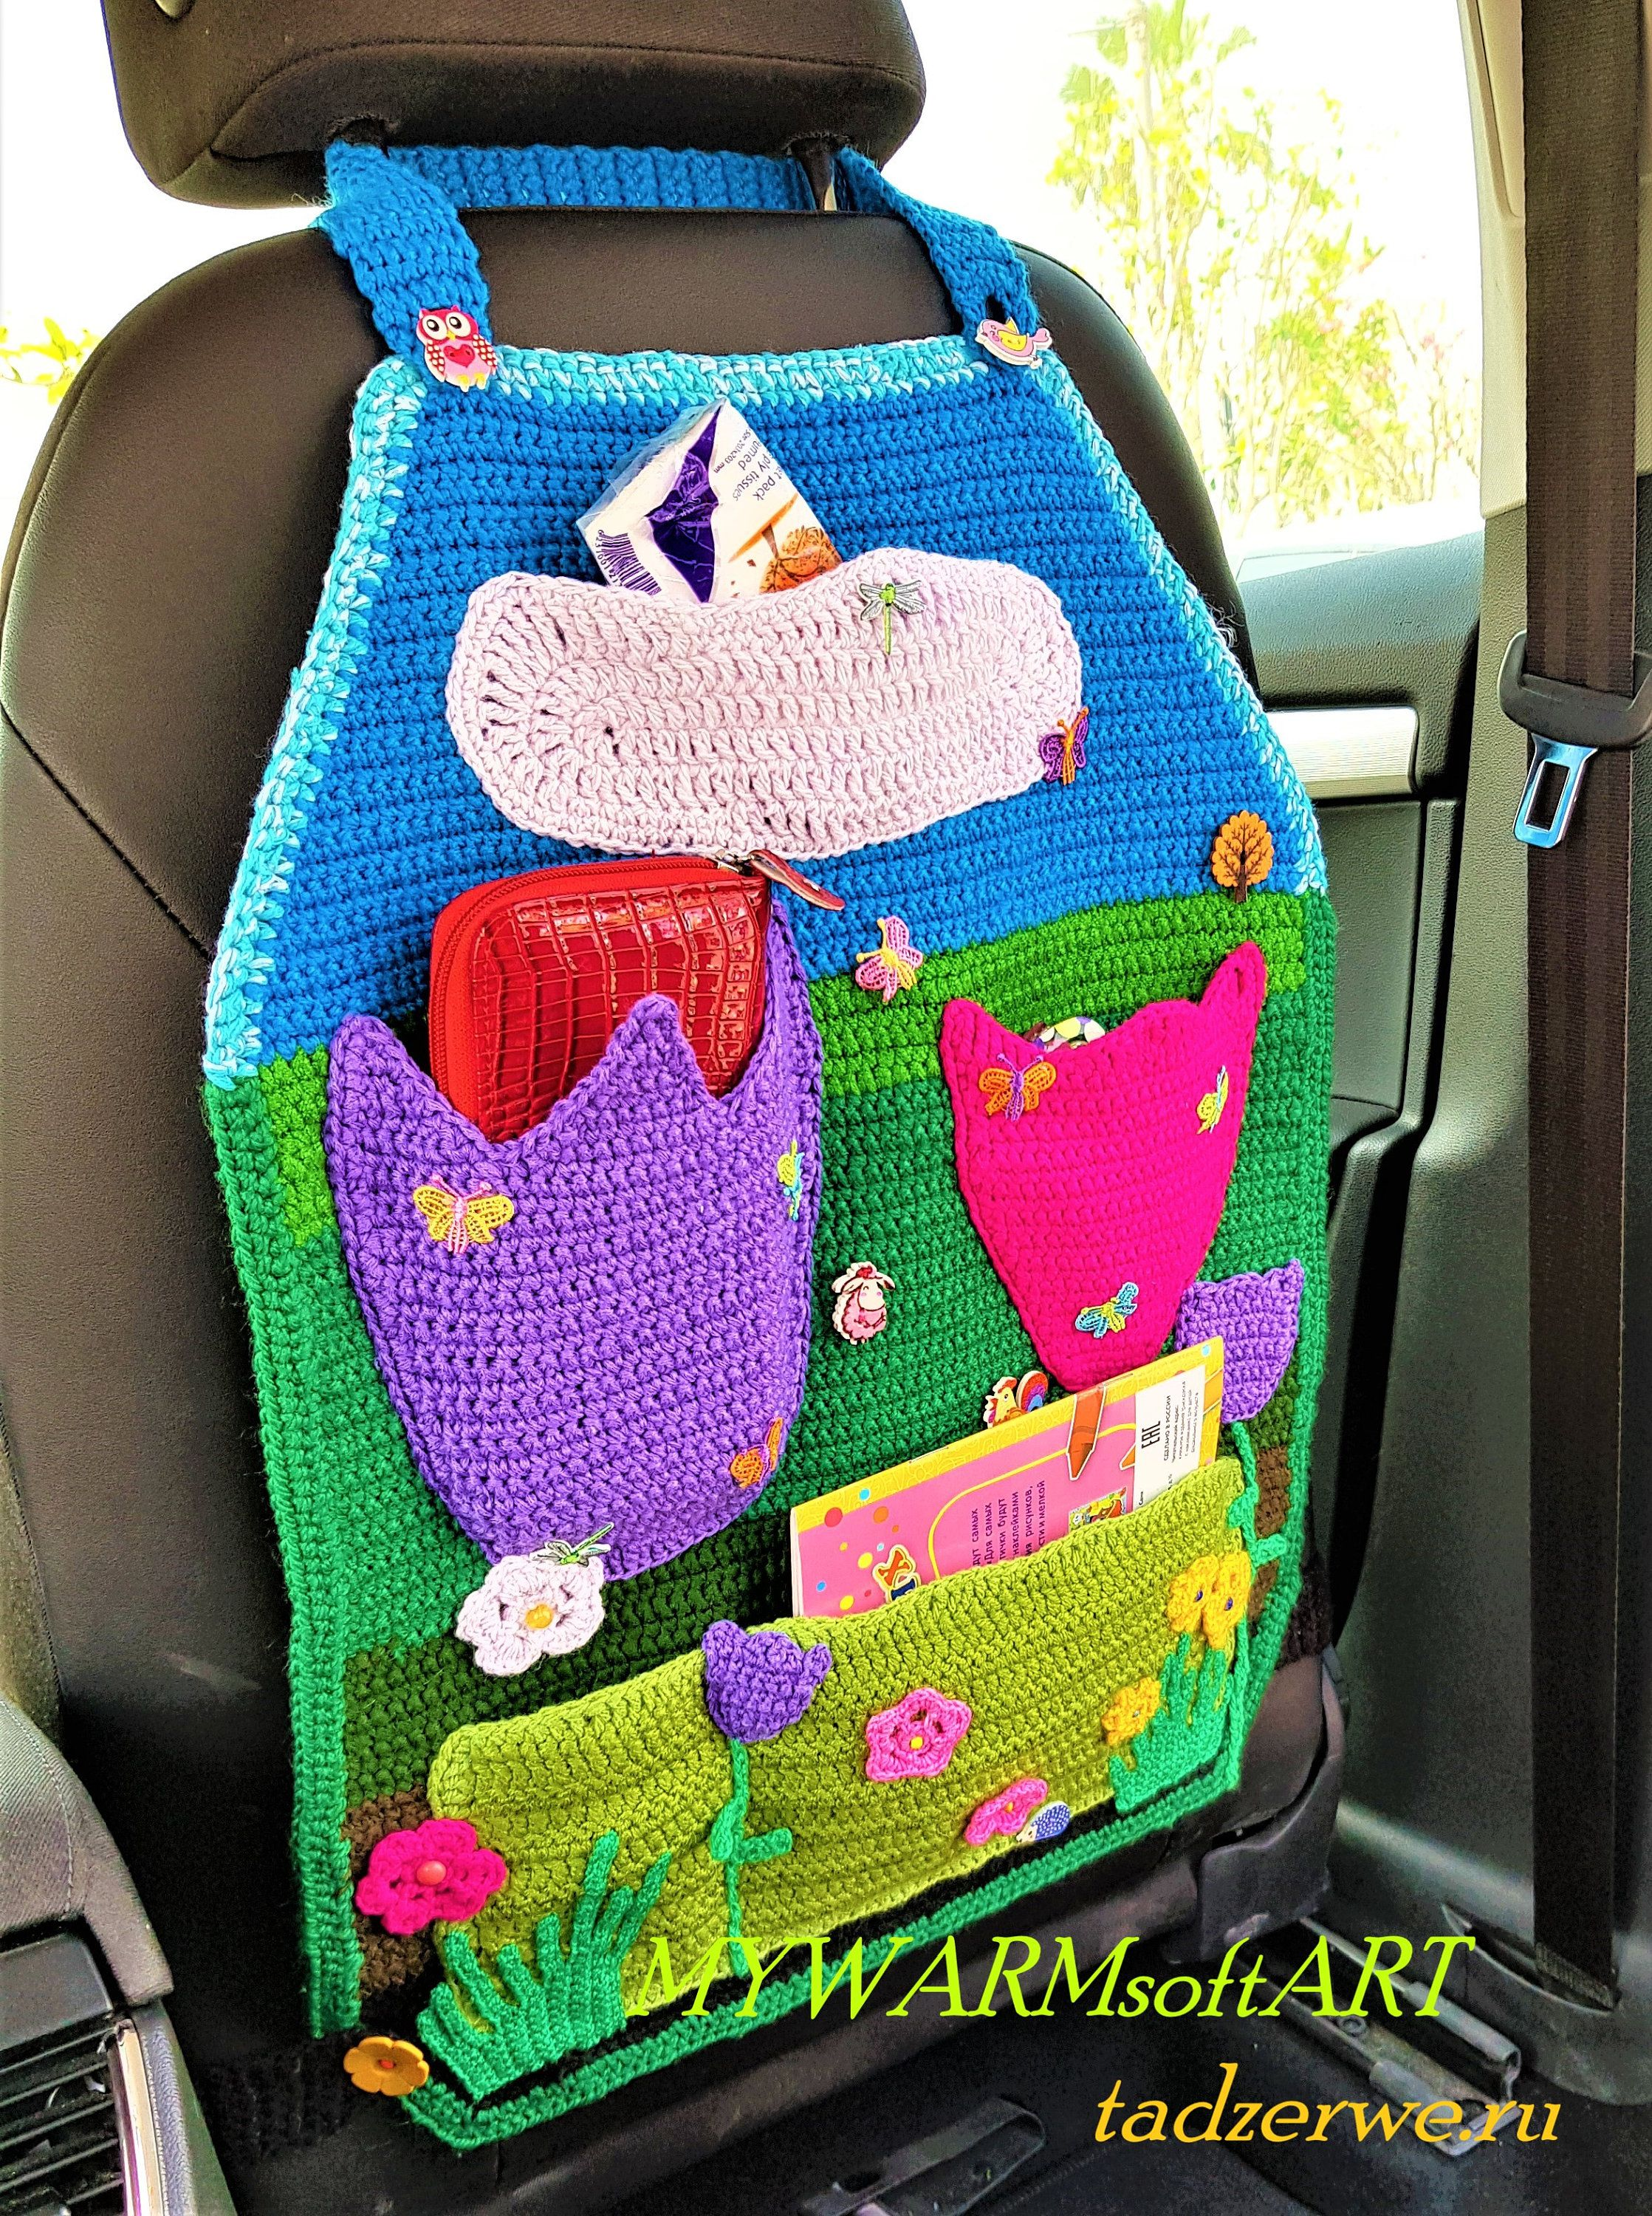 Crochet Pattern Organizer For Car Baby Cot Children S Etsy Crochet Organizer Crochet Car Baby Crochet Patterns Free